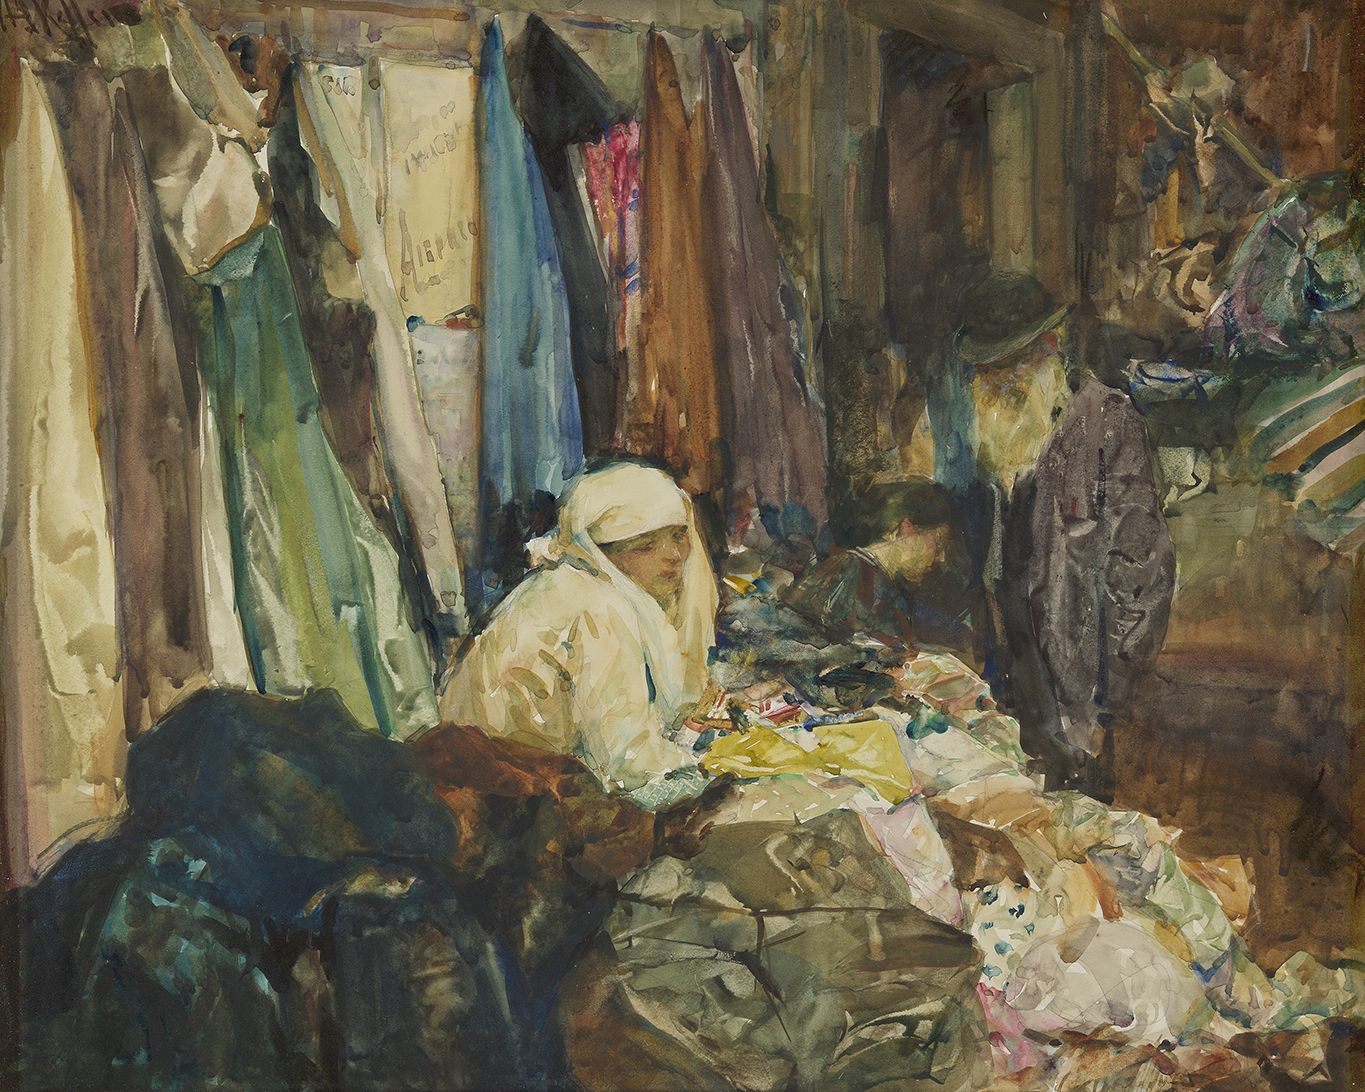 Arthur Keller (1866-1924), The Old Textile Shop, circa 1910